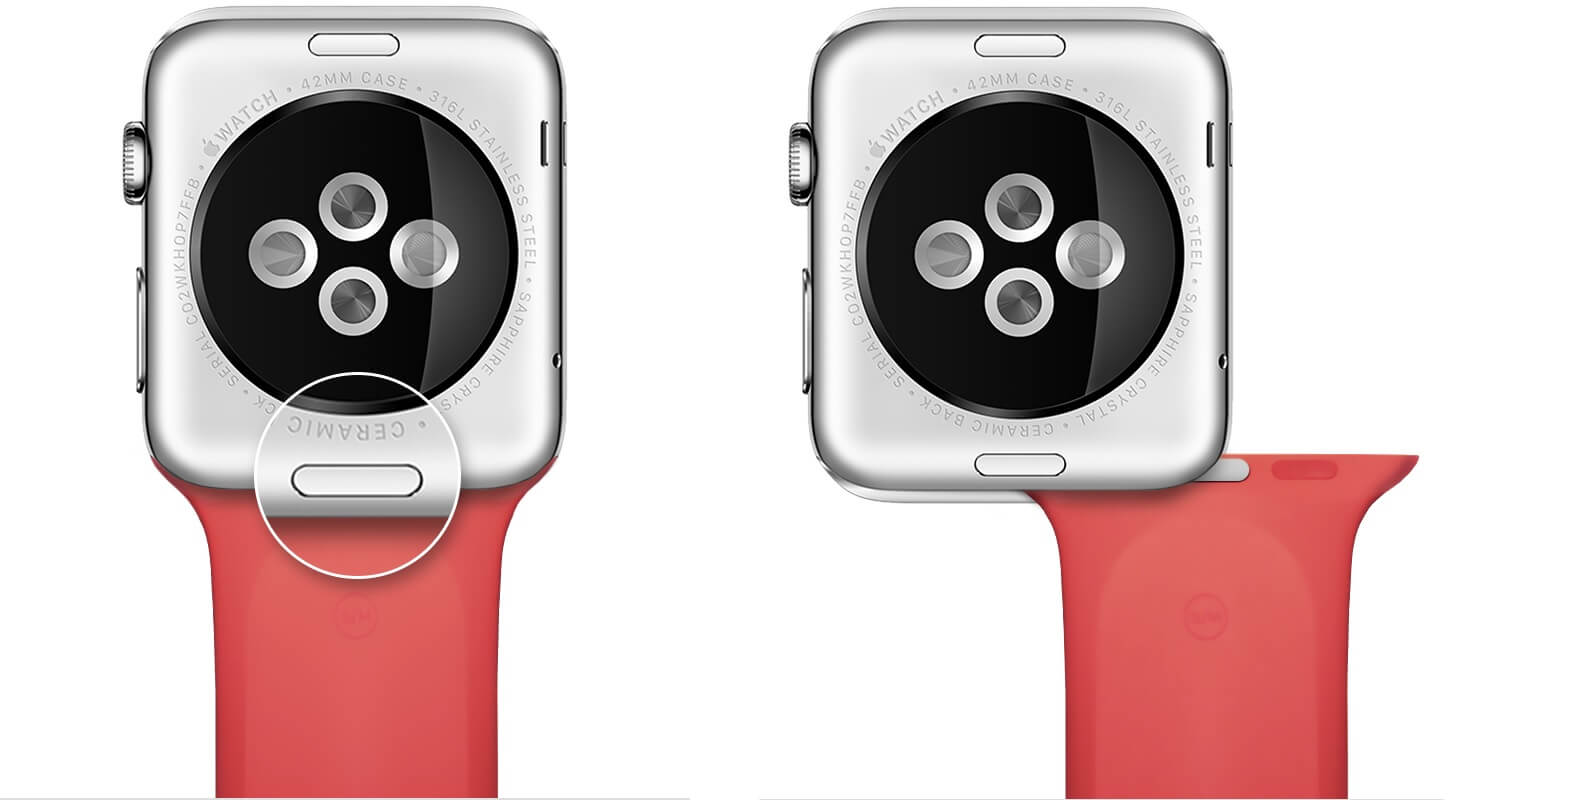 Remover pulseira do Apple Watch